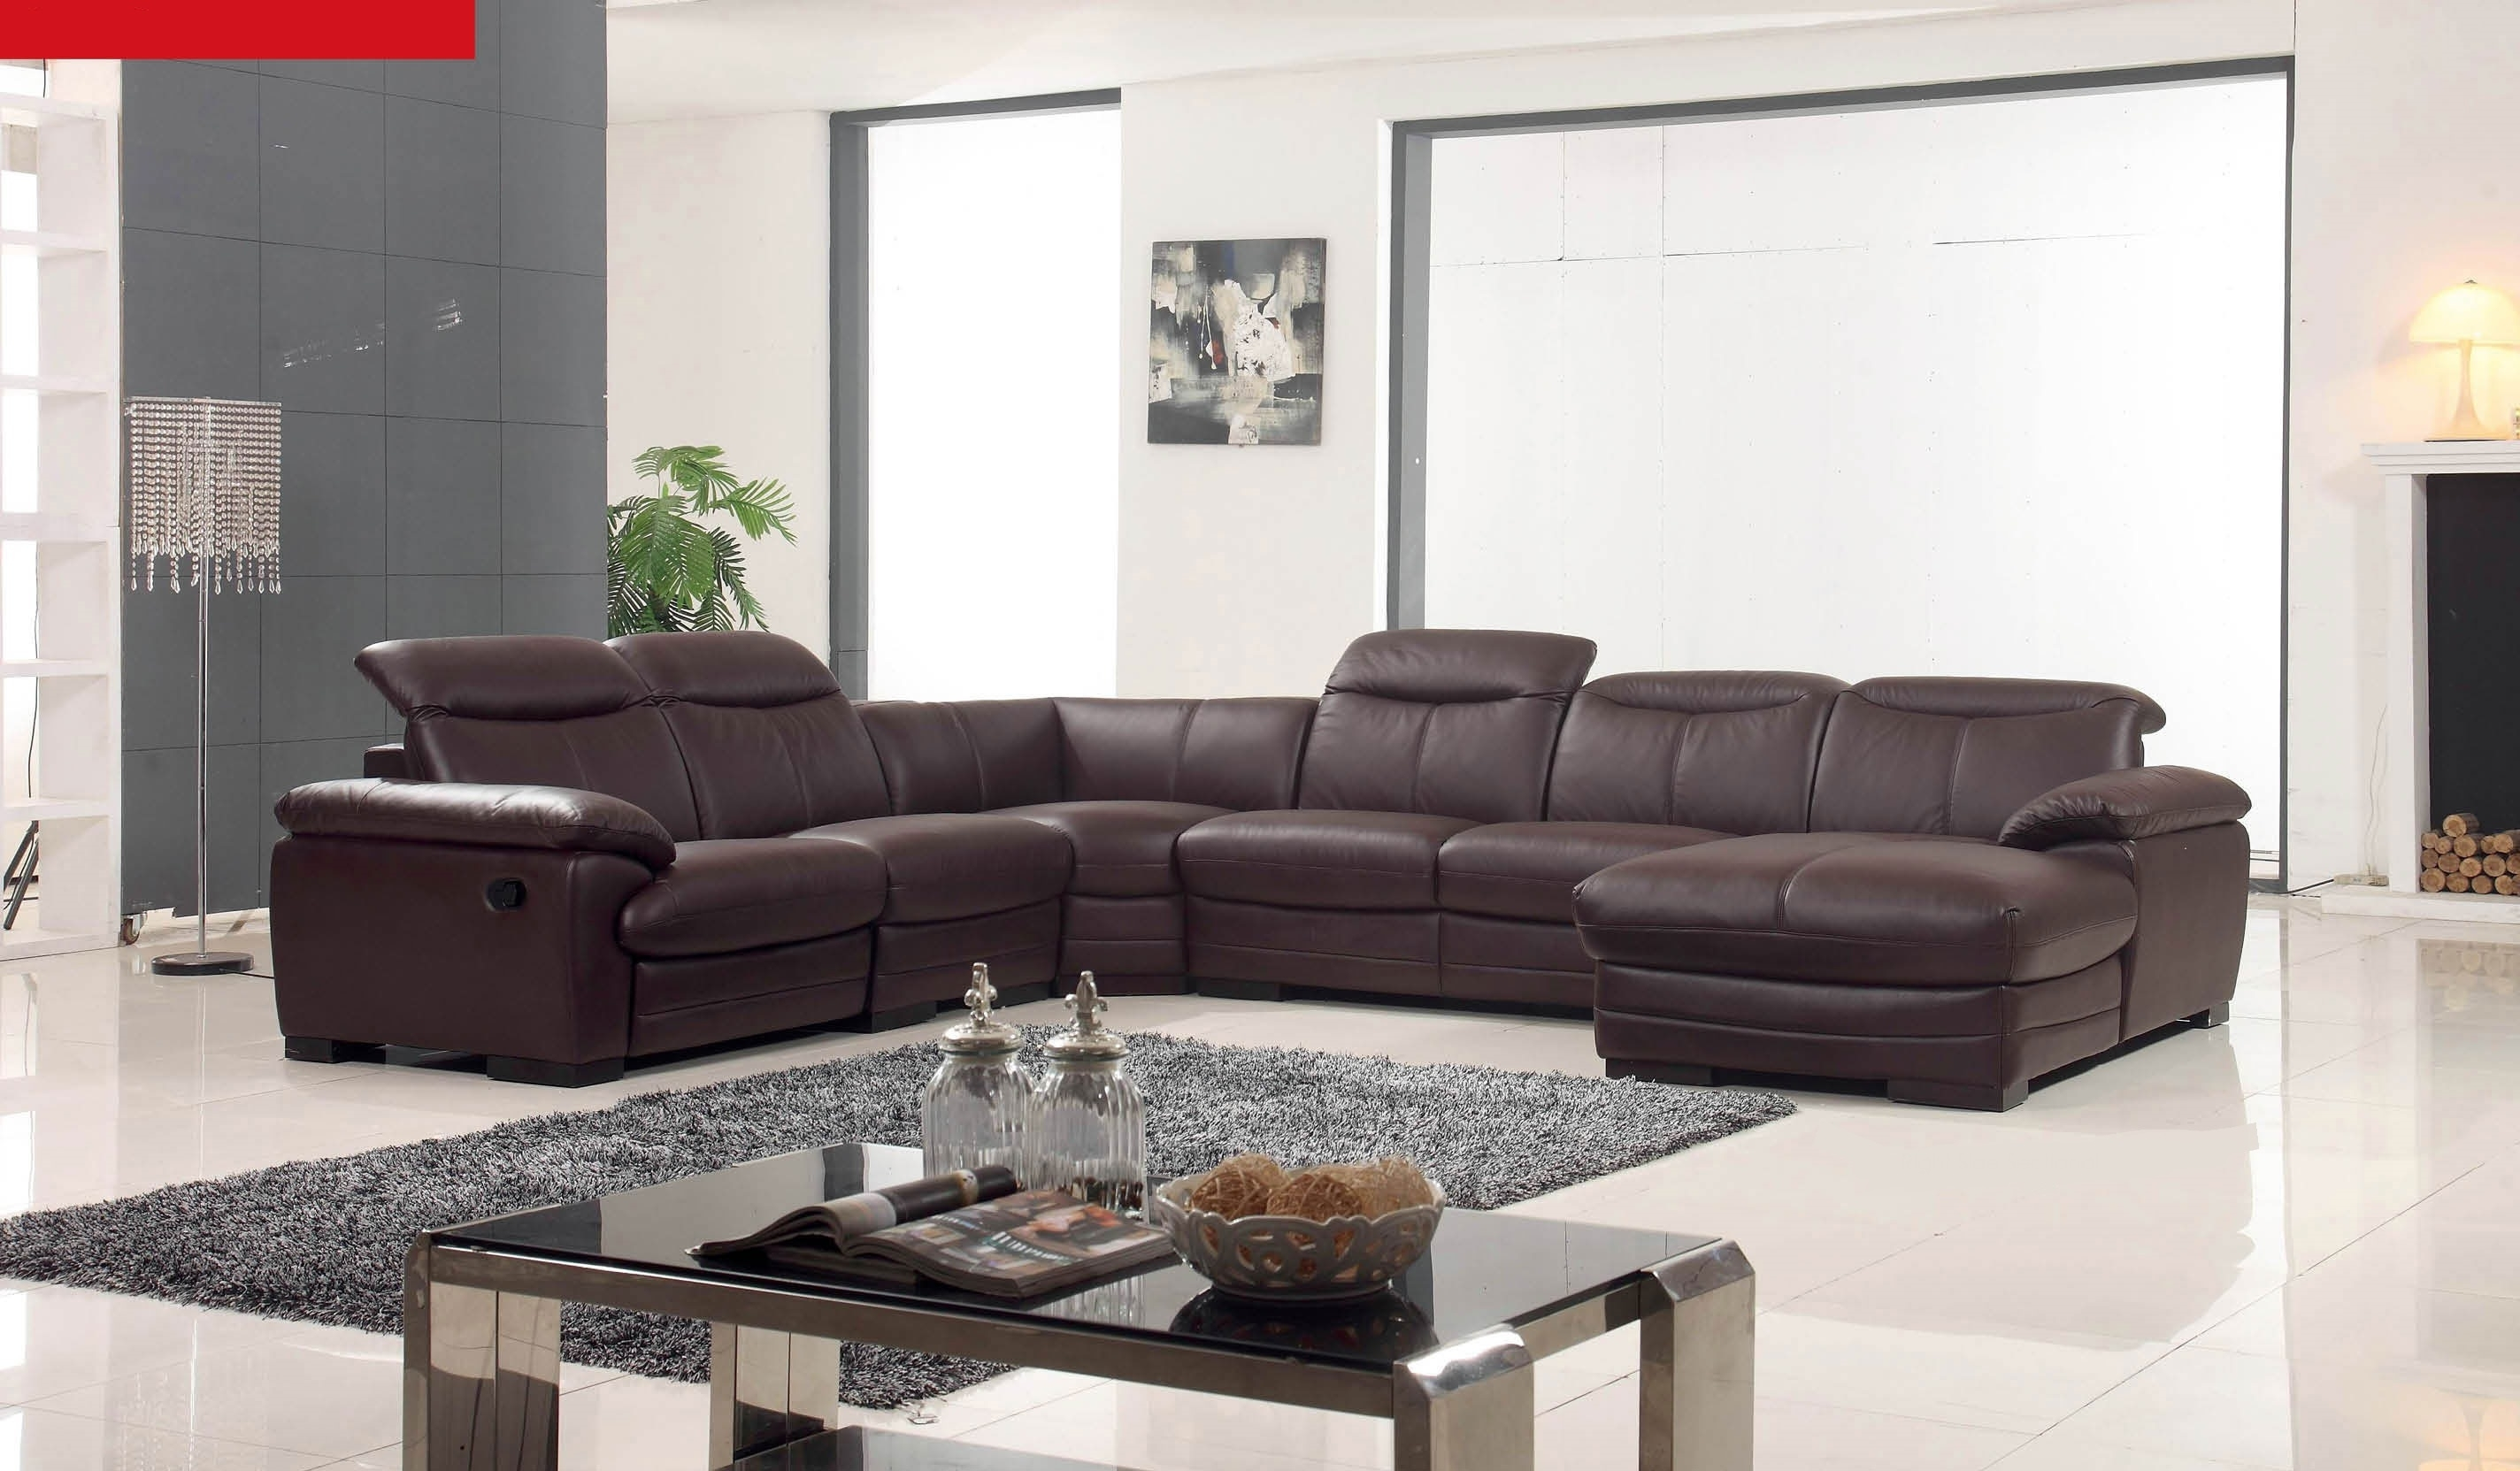 Trendy Sectional Sofas: Vermont Sectional Sofa Jp 2146 Sectional/4 – Ba Inside Vt Sectional Sofas (View 2 of 21)